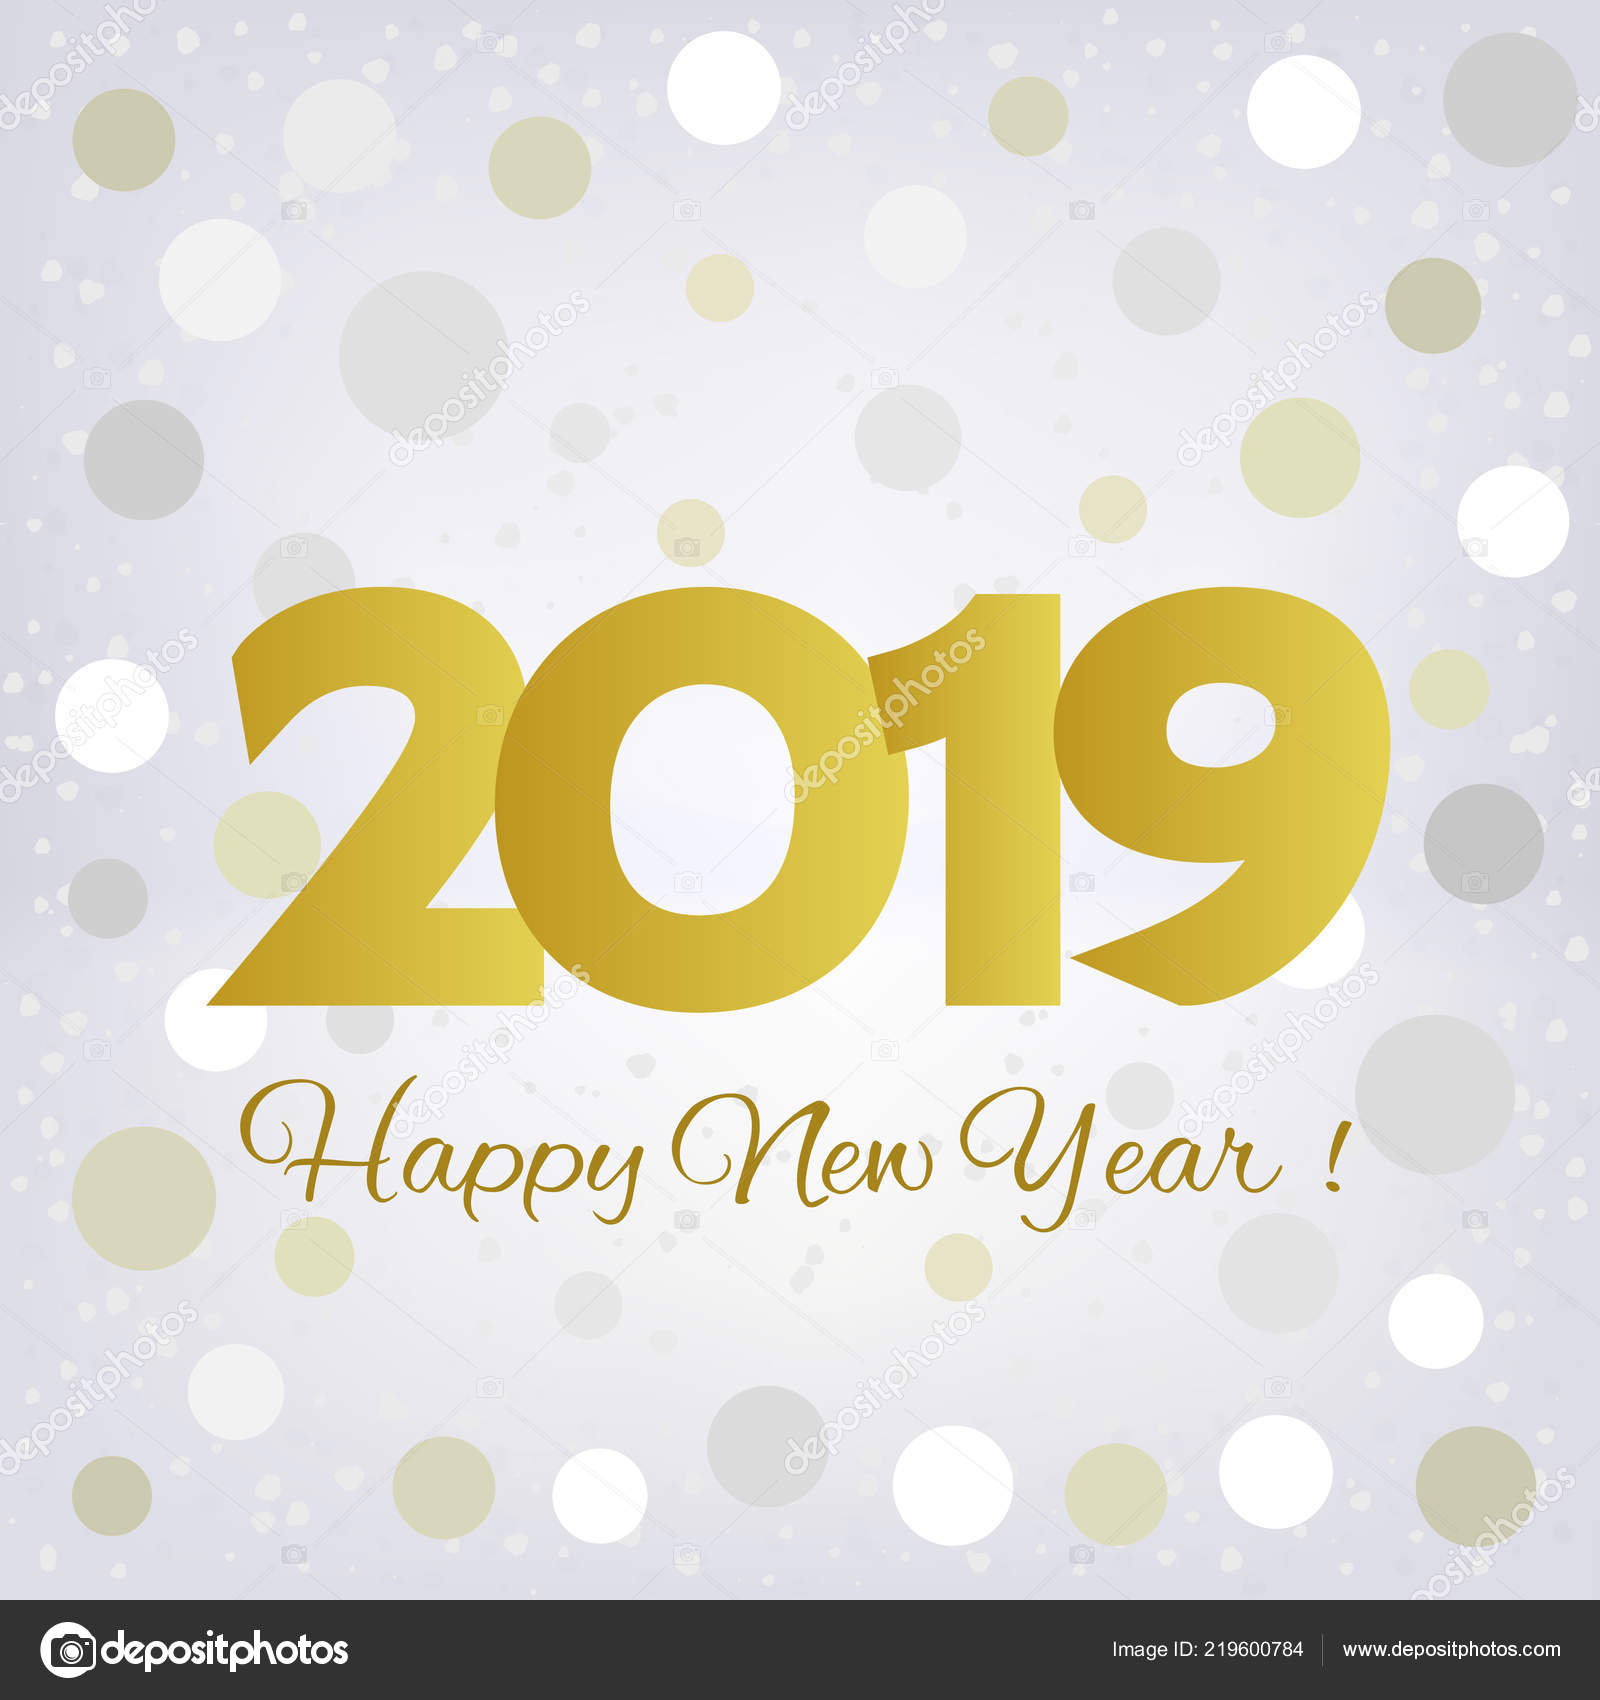 2019 golden number happy new year greeting card with silvery and ...